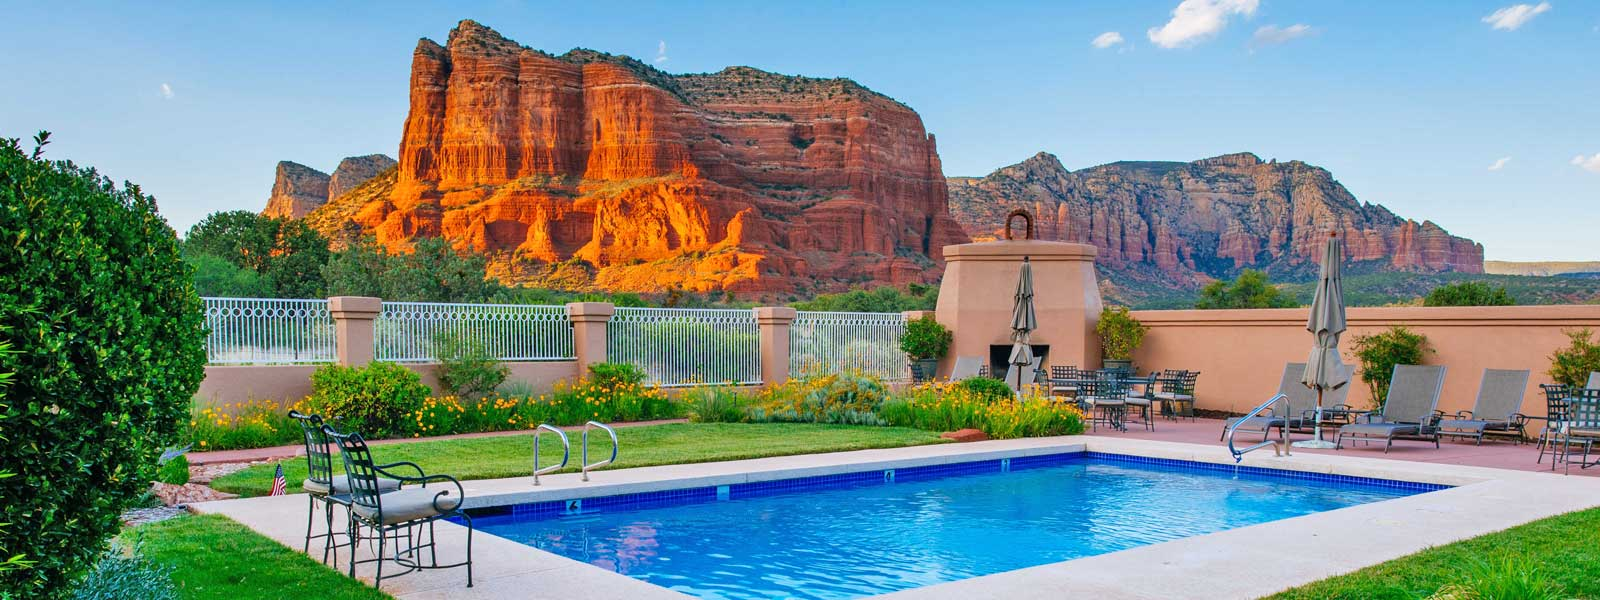 A pool next to a body of water at Canyon Villa Bed & Breakfast.